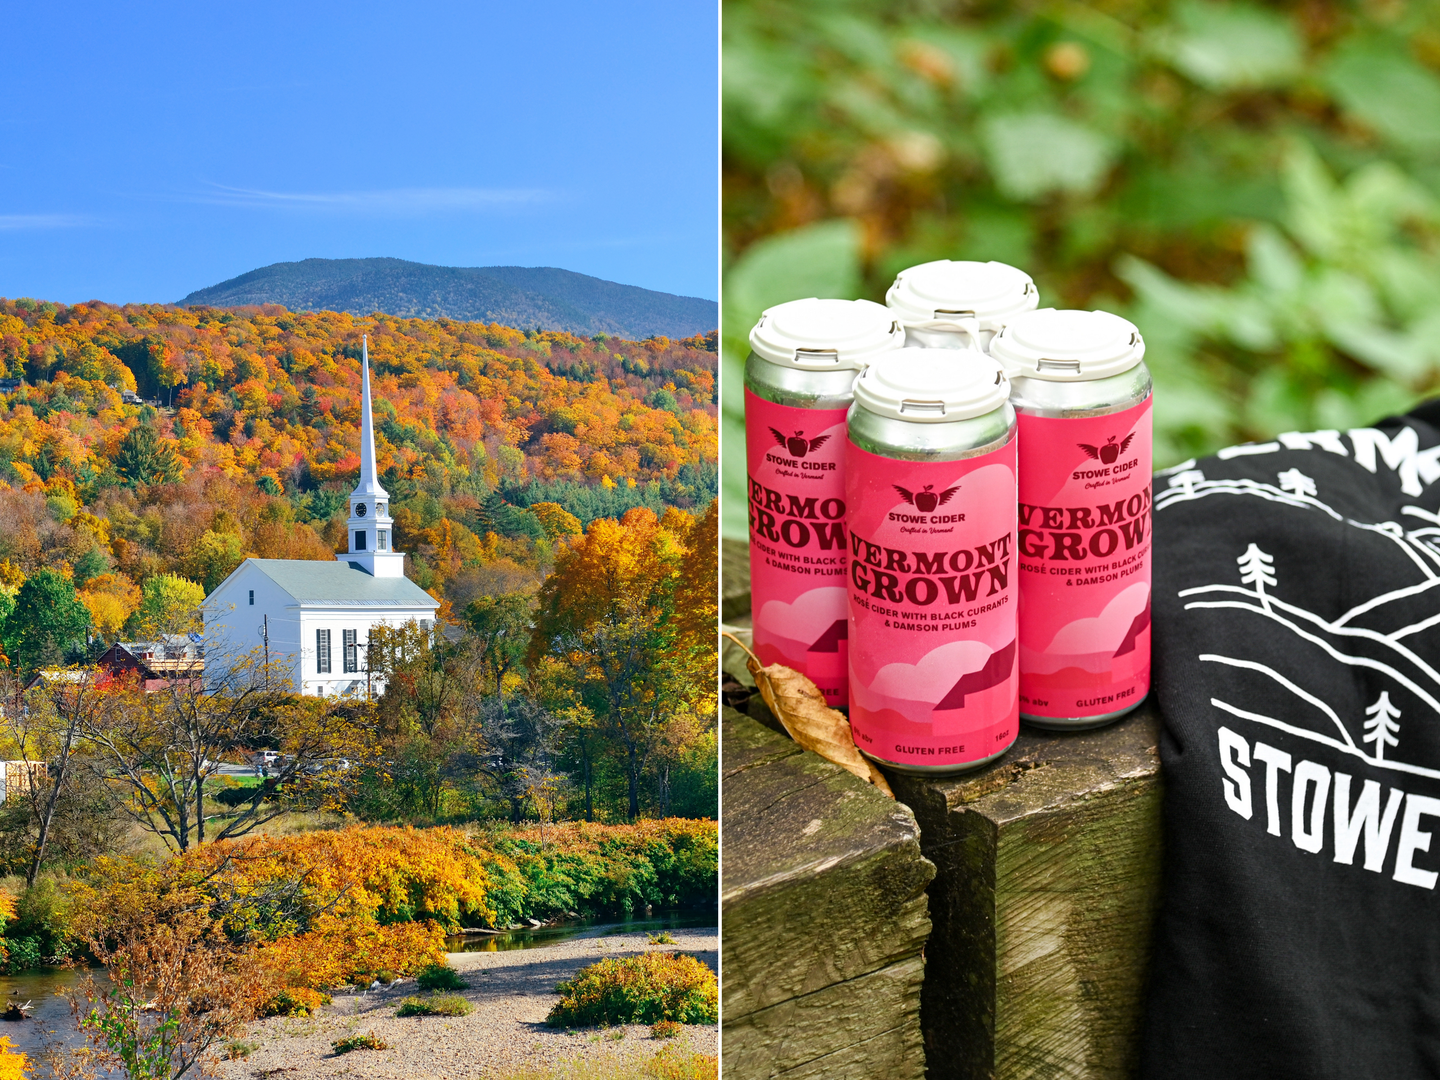 Stowe and Stowe Cider